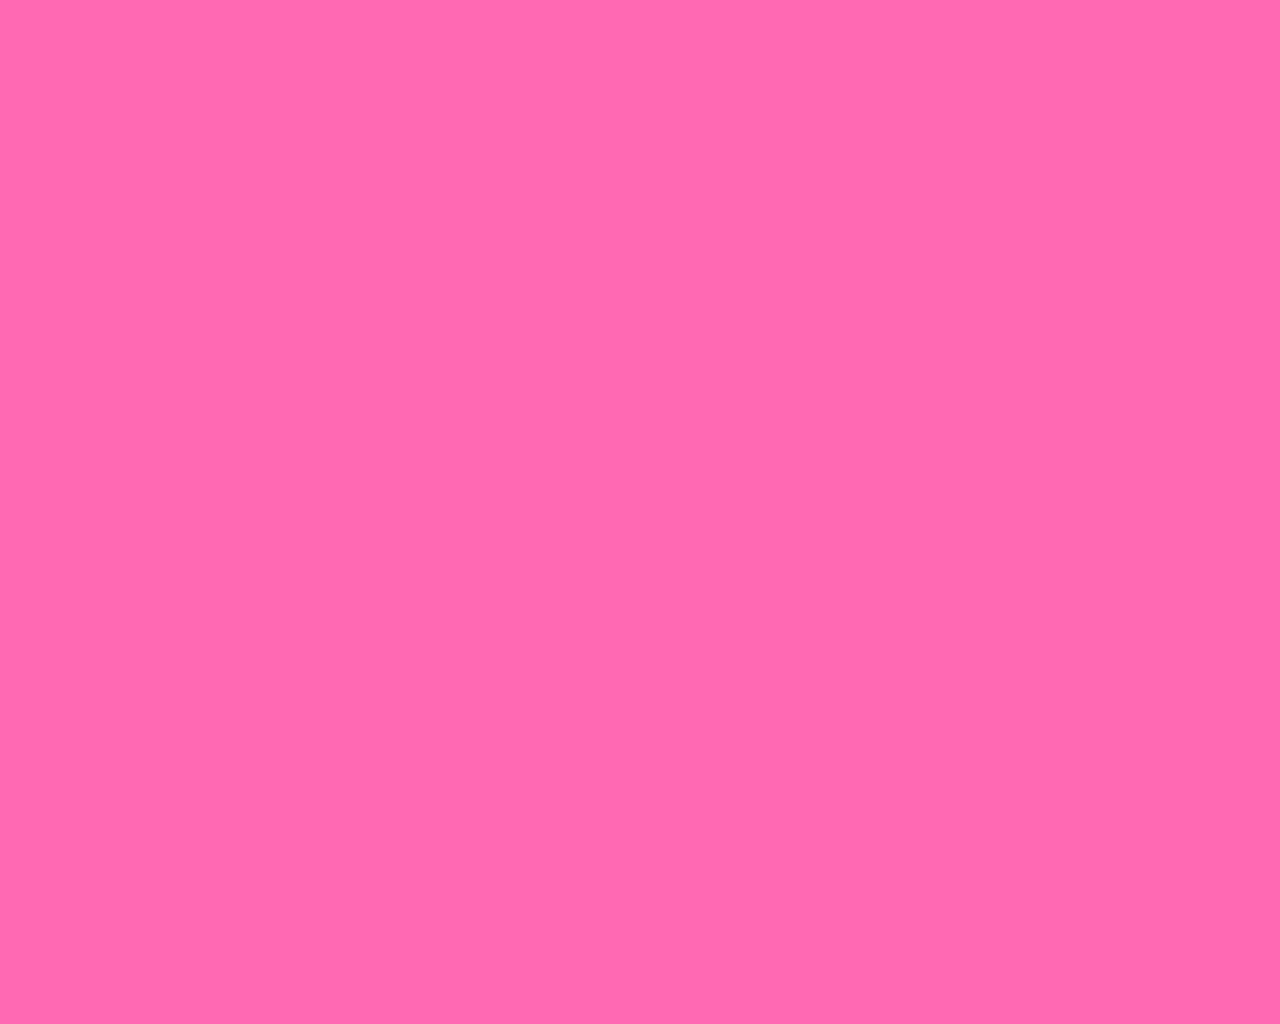 Bright Neon Pink Backgrounds 1280x1024 hot pink solid color 1280x1024